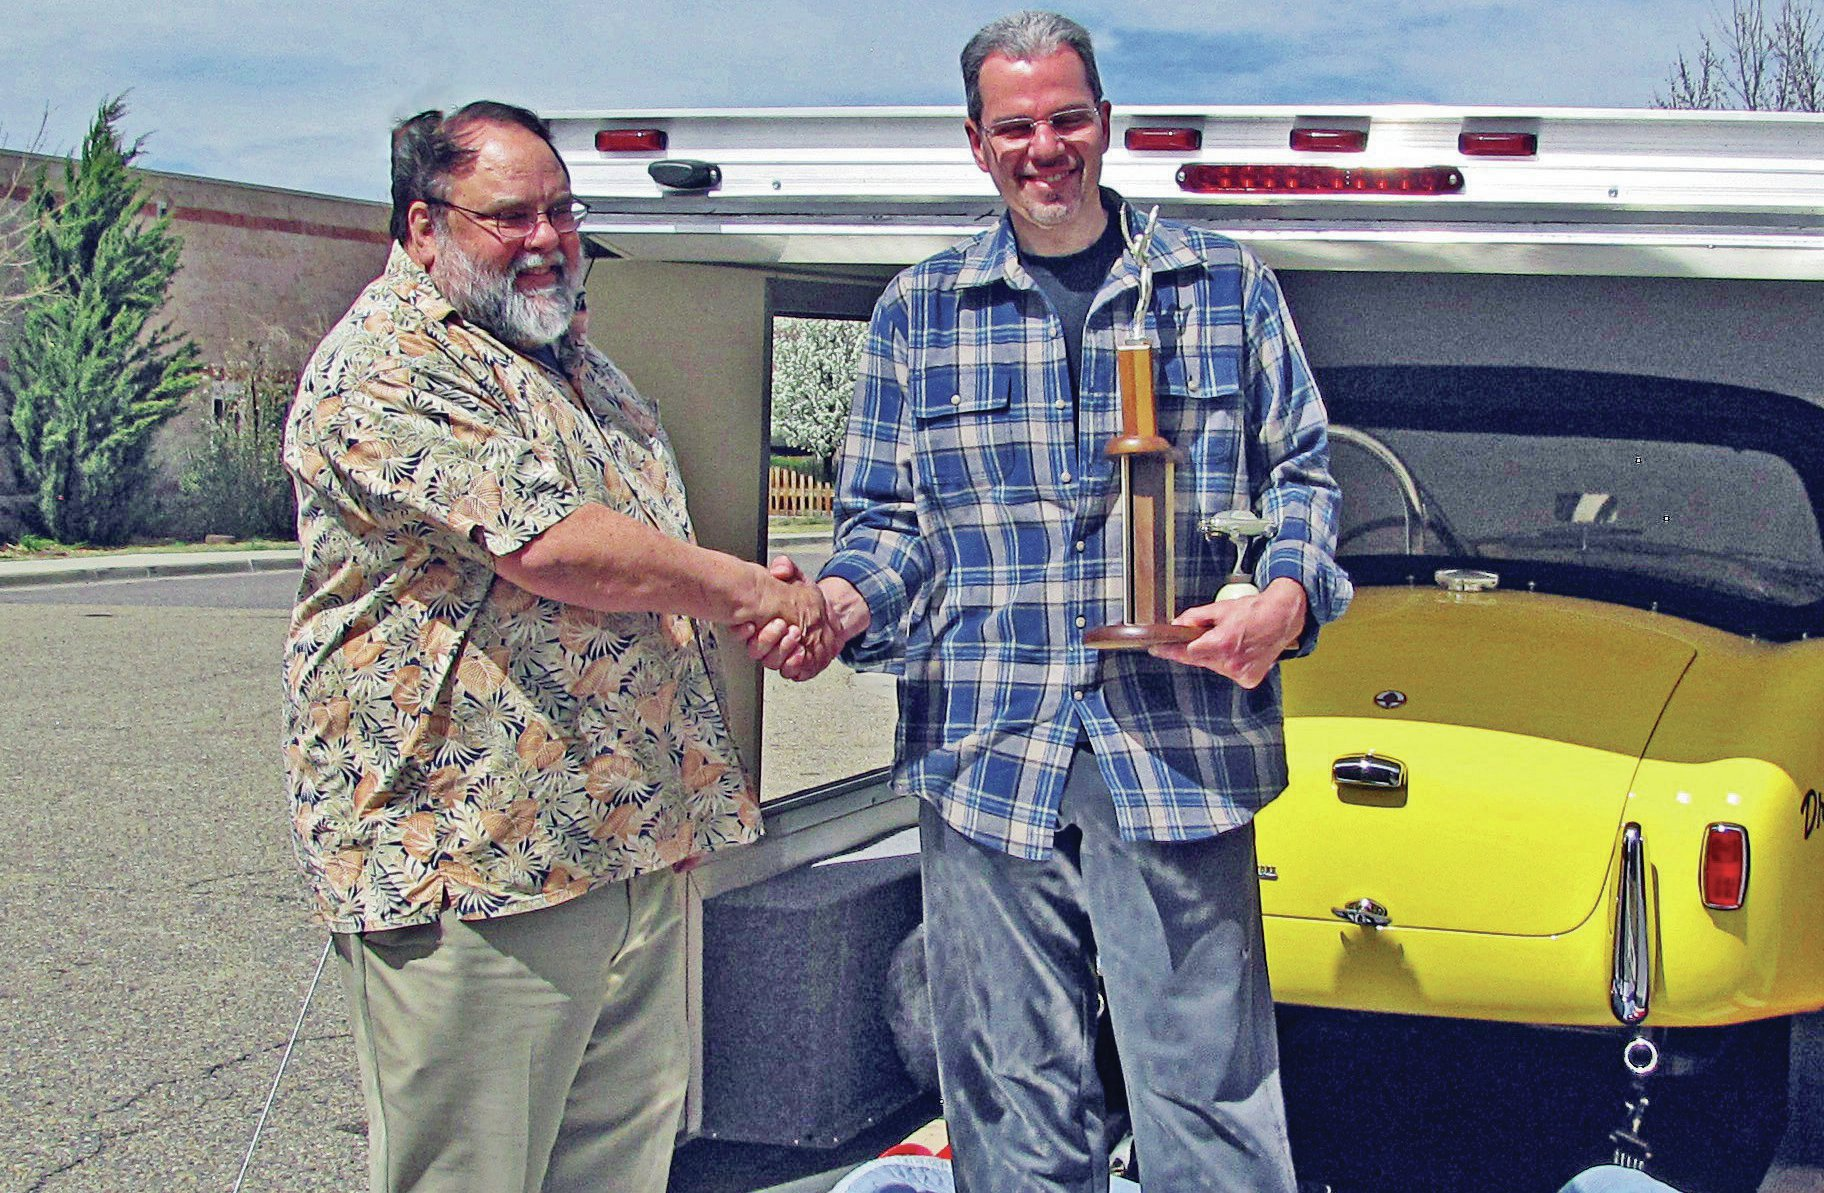 Present owner Steve Juliano (right), next to Mike Reimer, took a restored car and re-restored it to impeccable standards. His secret weapon: his massive stash of NOS parts. Searching out these rare parts is Steves's specialty, and restoring a car to these standards is his passion. Small-block Cobra guru Dan Case helped Steve push the Dragonsnake to become the highest-scoring Cobra in SAAC judging history.